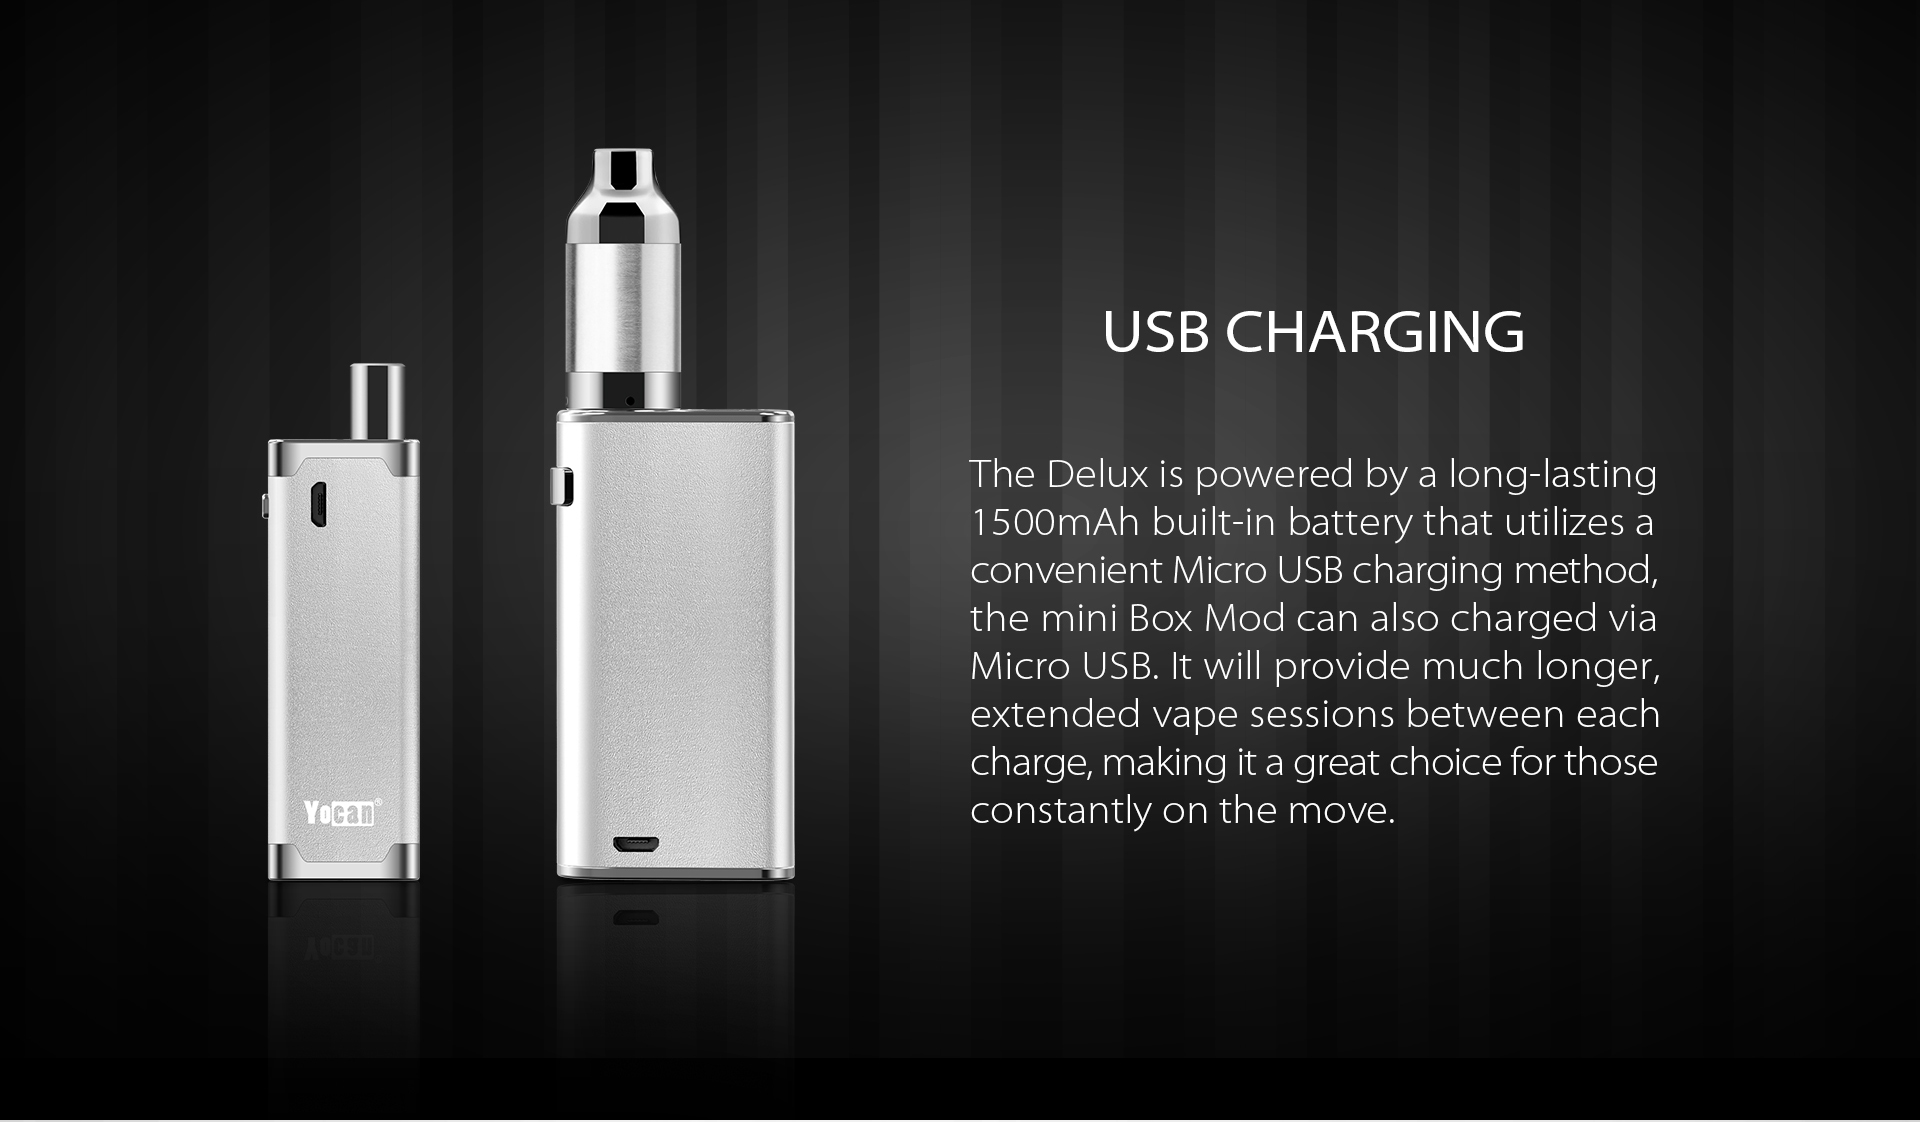 Yocan DeLux will provide much longer extended vape sessions between each charge.